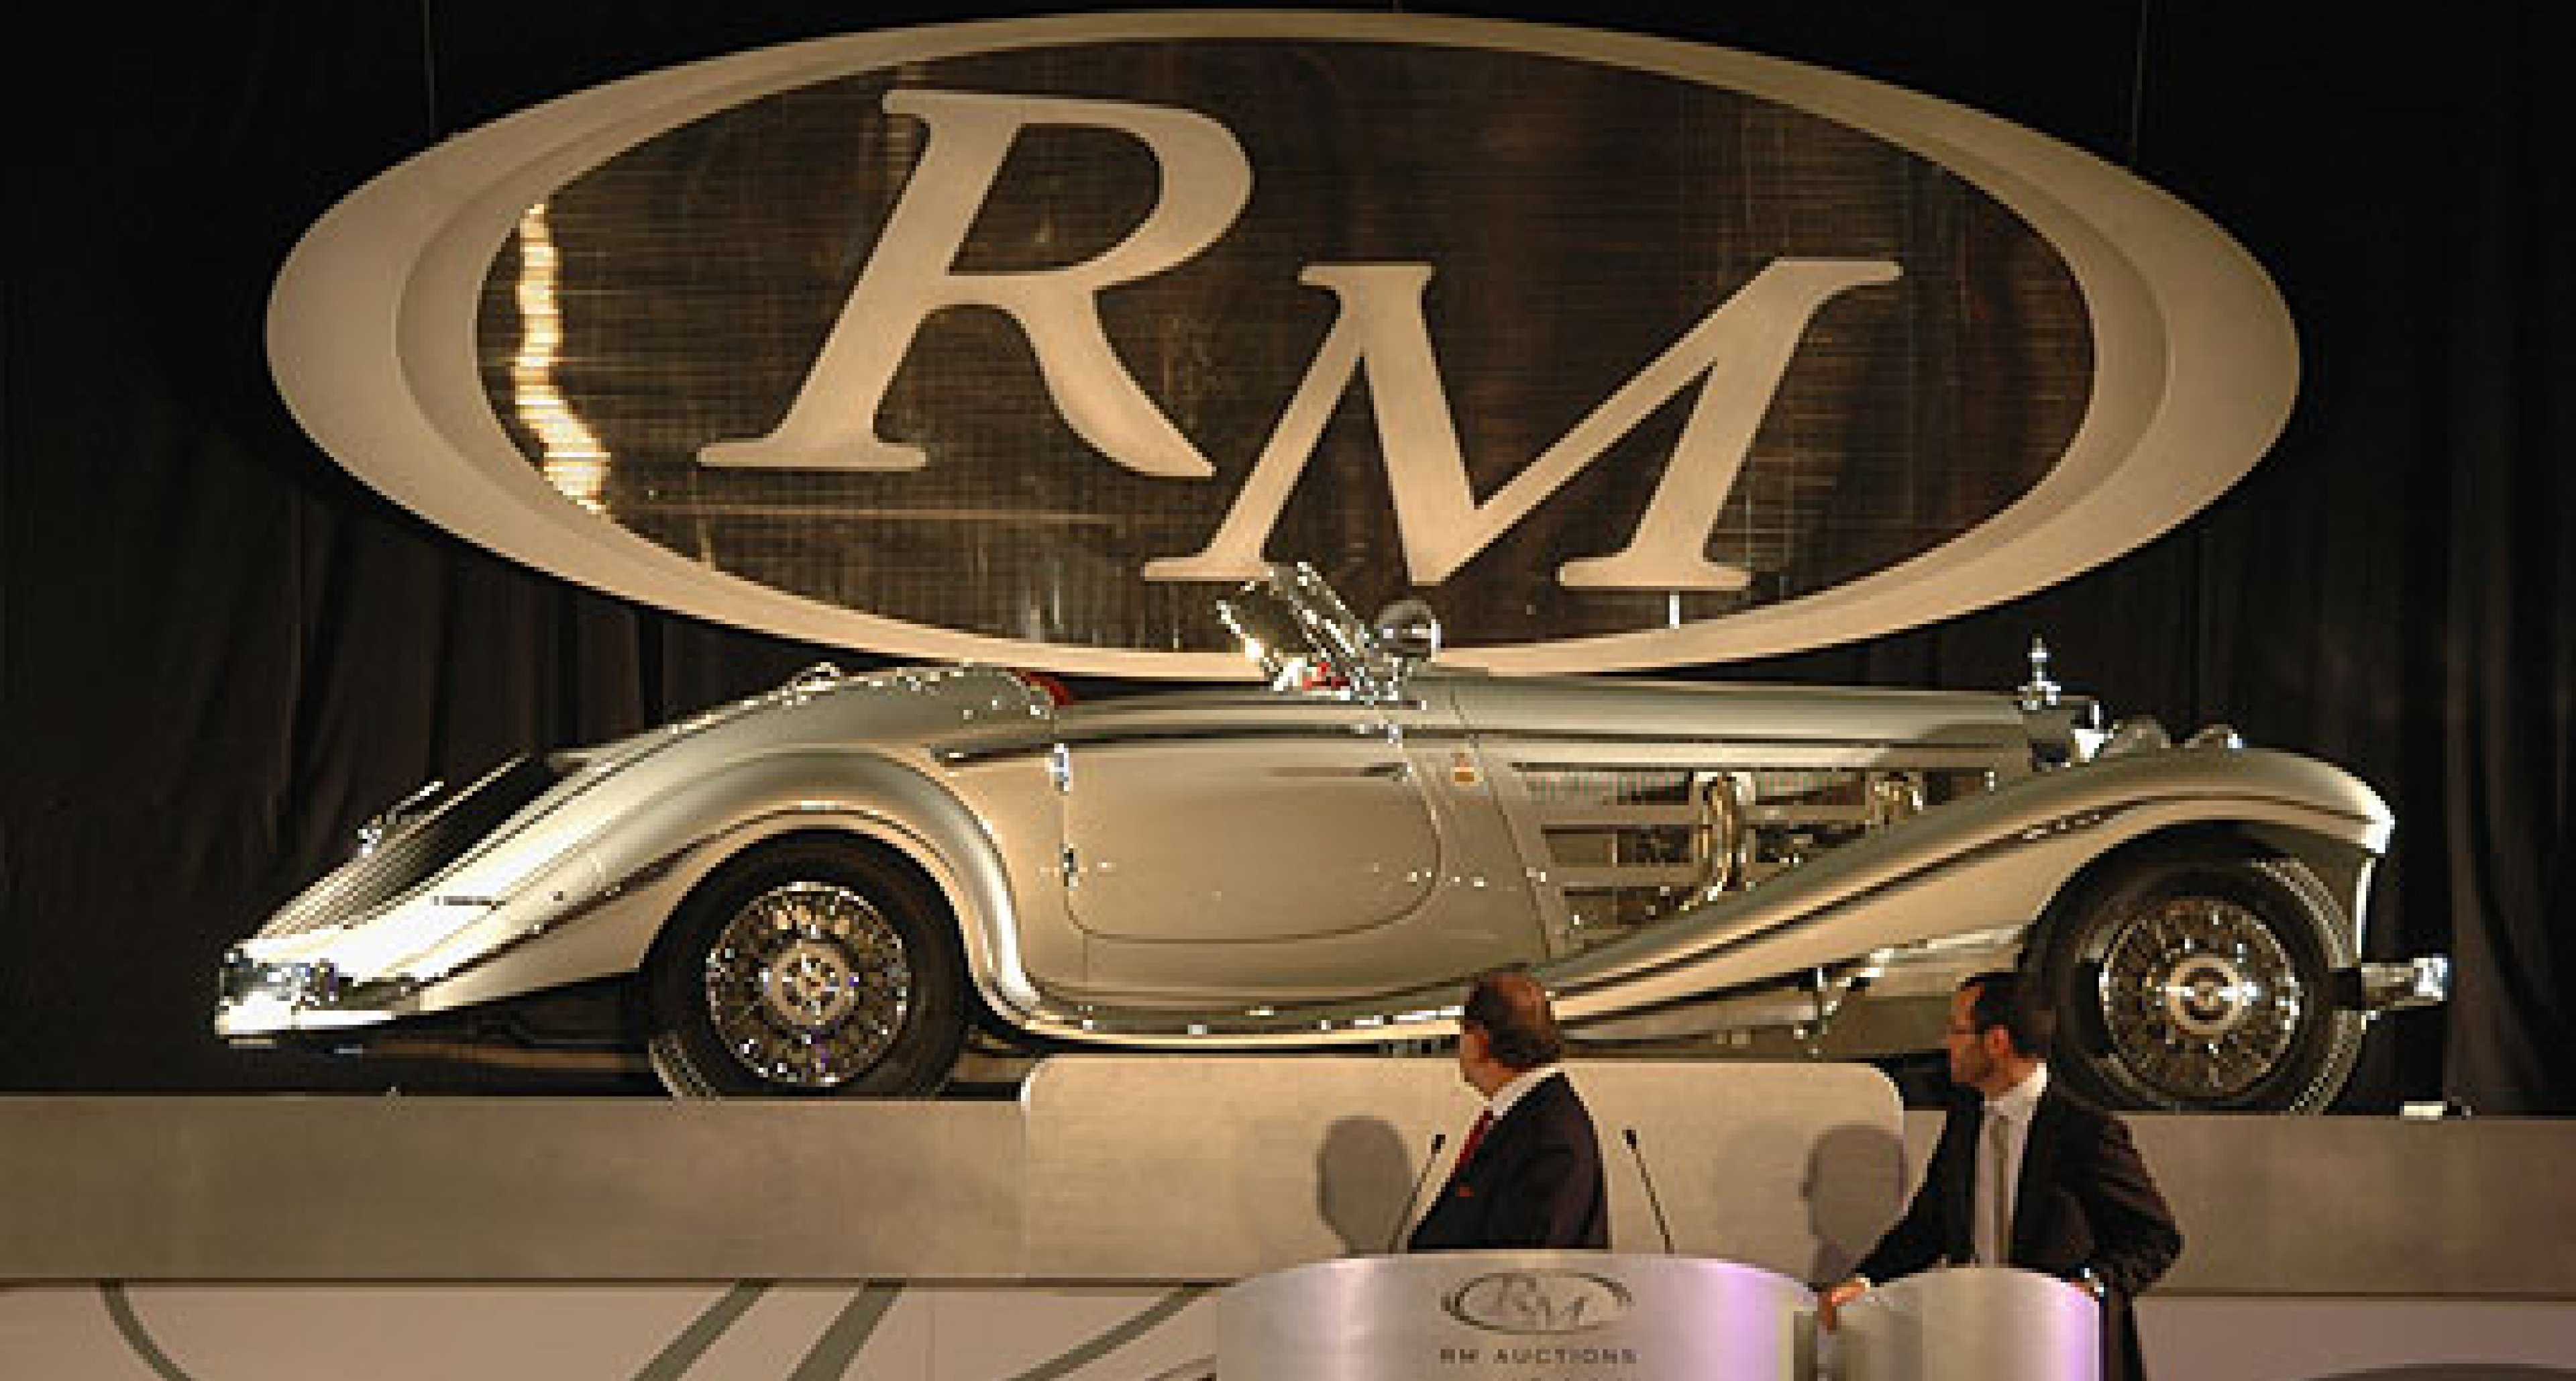 RM Auctions - Automobiles of London 31st October 2007 - Review